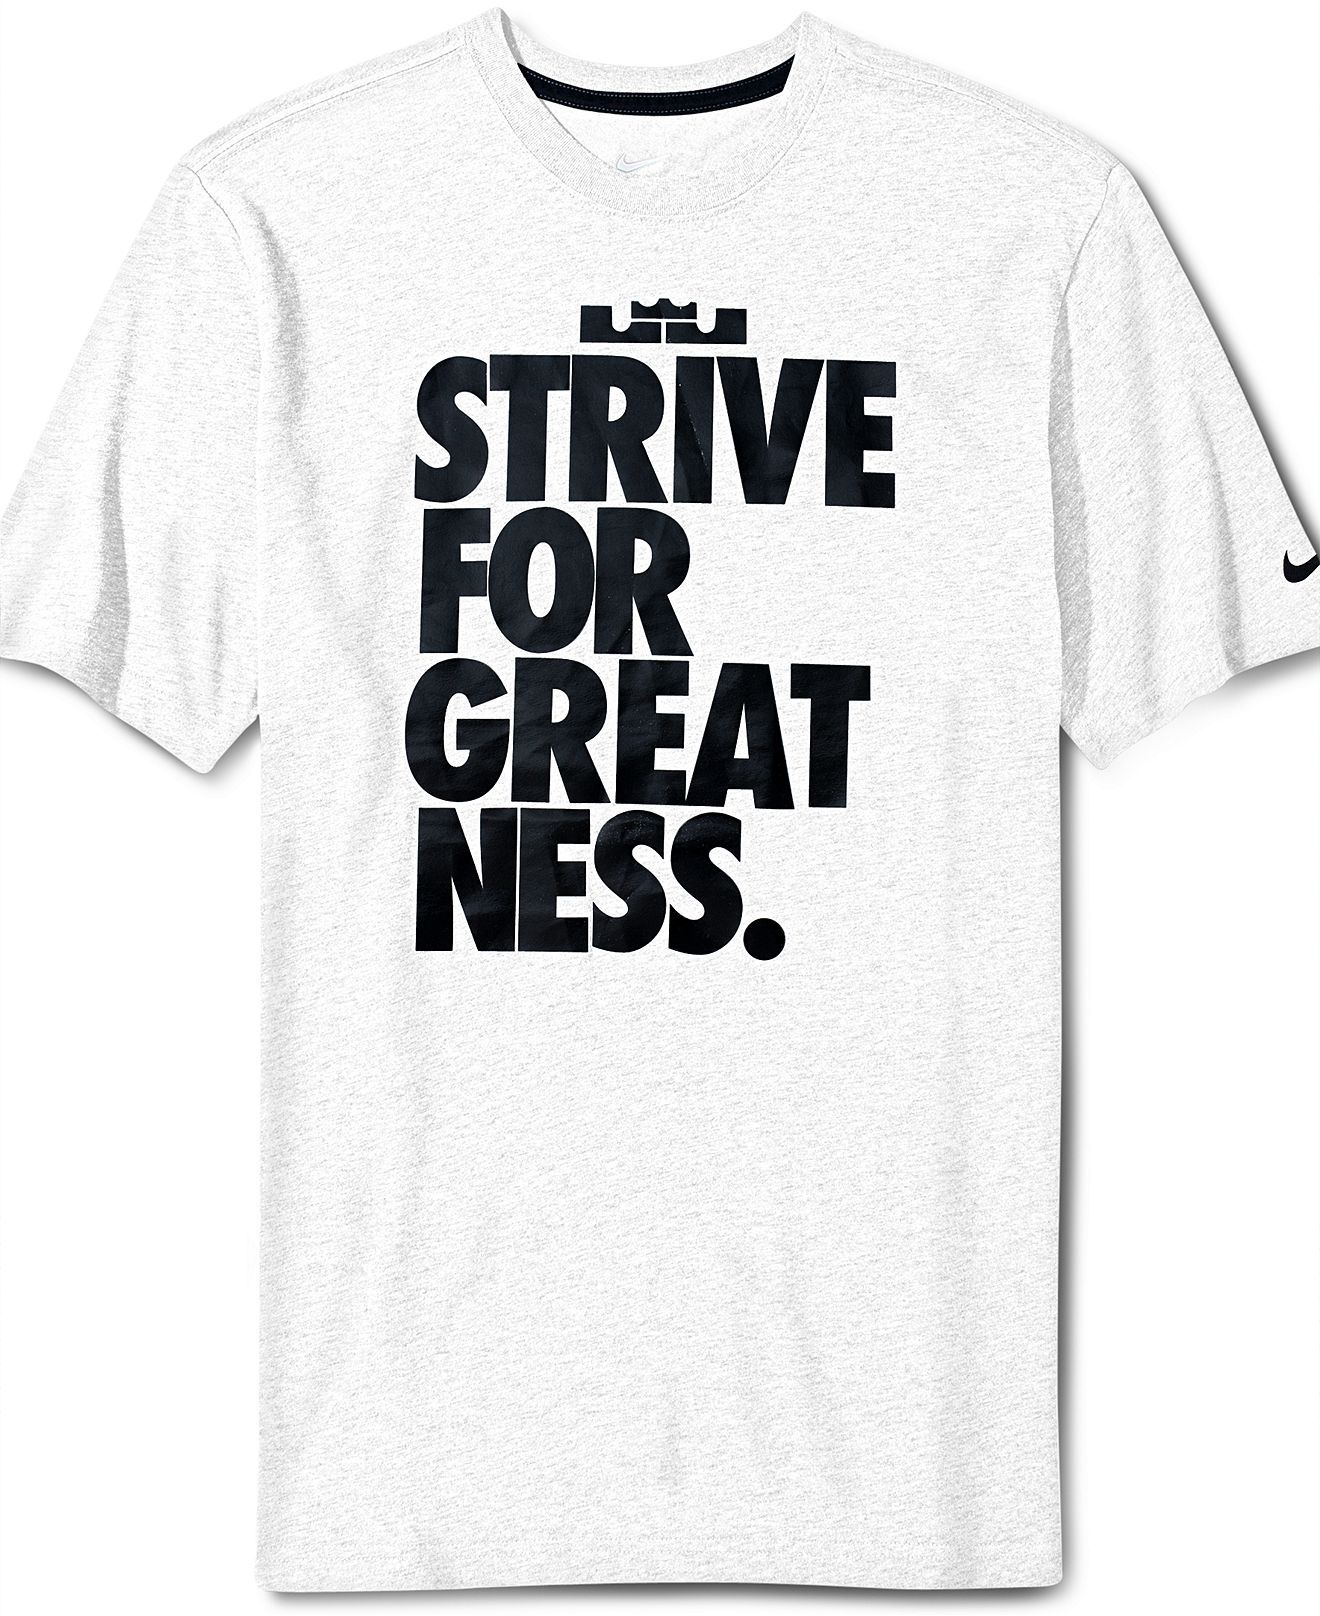 4c6f147b0a Nike Basketball T Shirt Sayings | RLDM